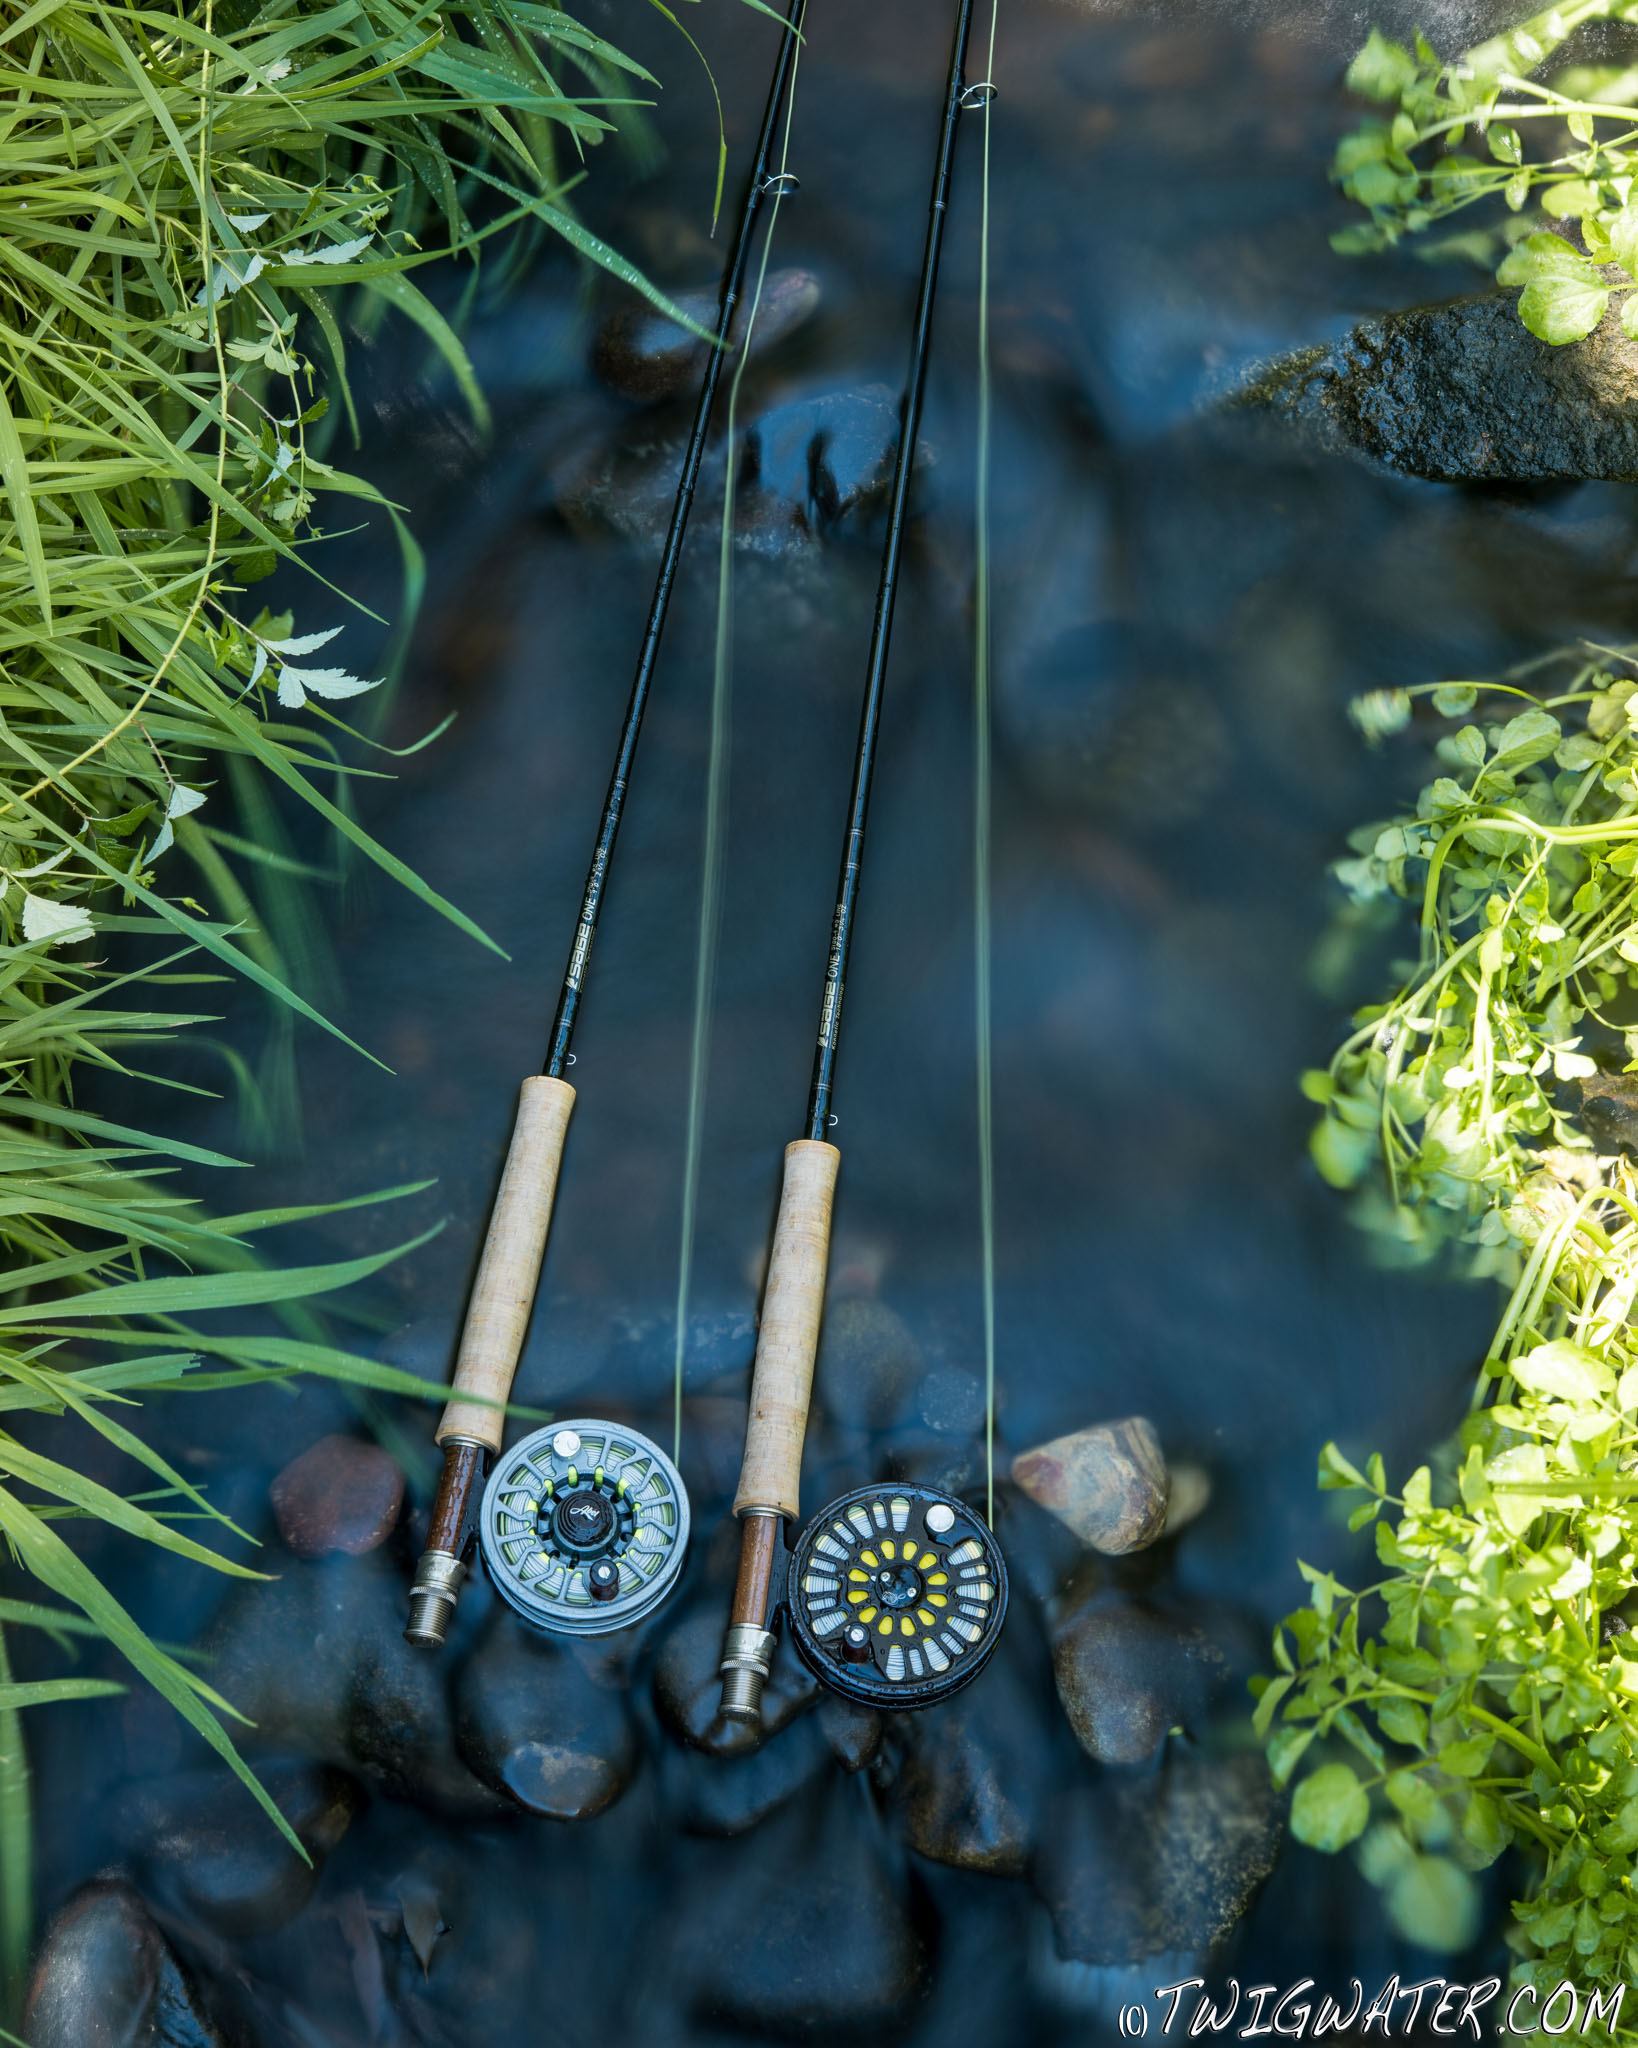 Sage One 5 weight fly rods and Abel reels